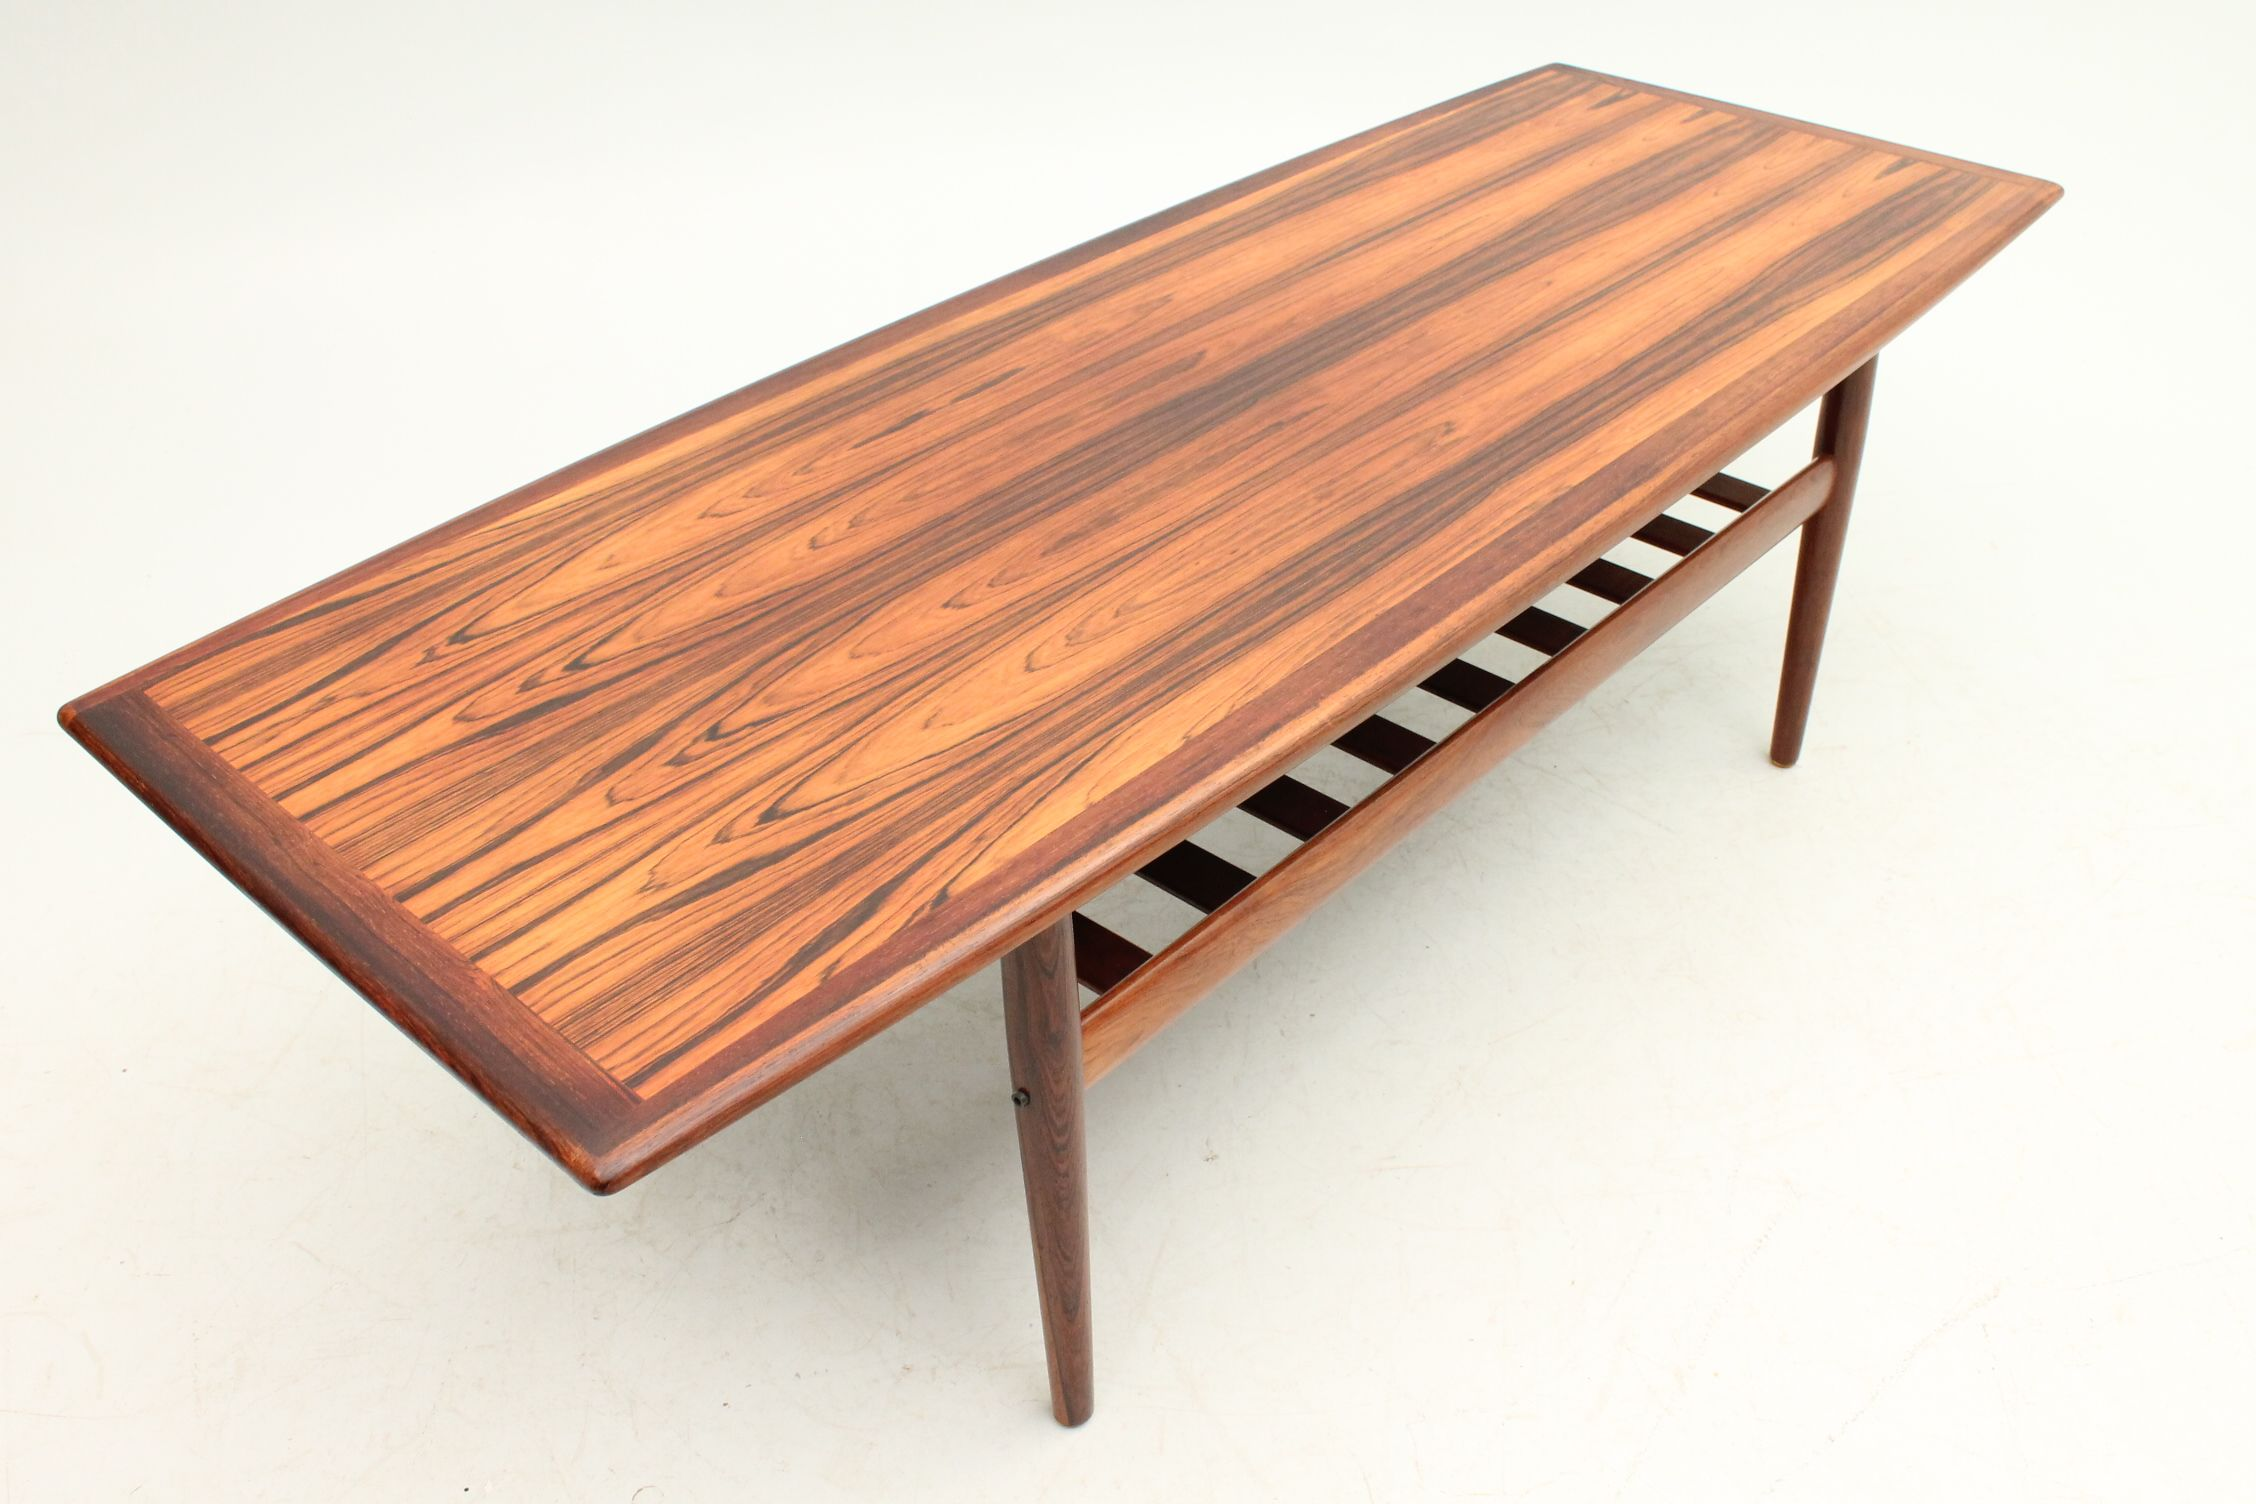 Original Coffee Table In Rosewood Designed By Grete Jalk And Manufactured  By Glostrup Møbelfabrik, Denmark. Www.reModern.dk